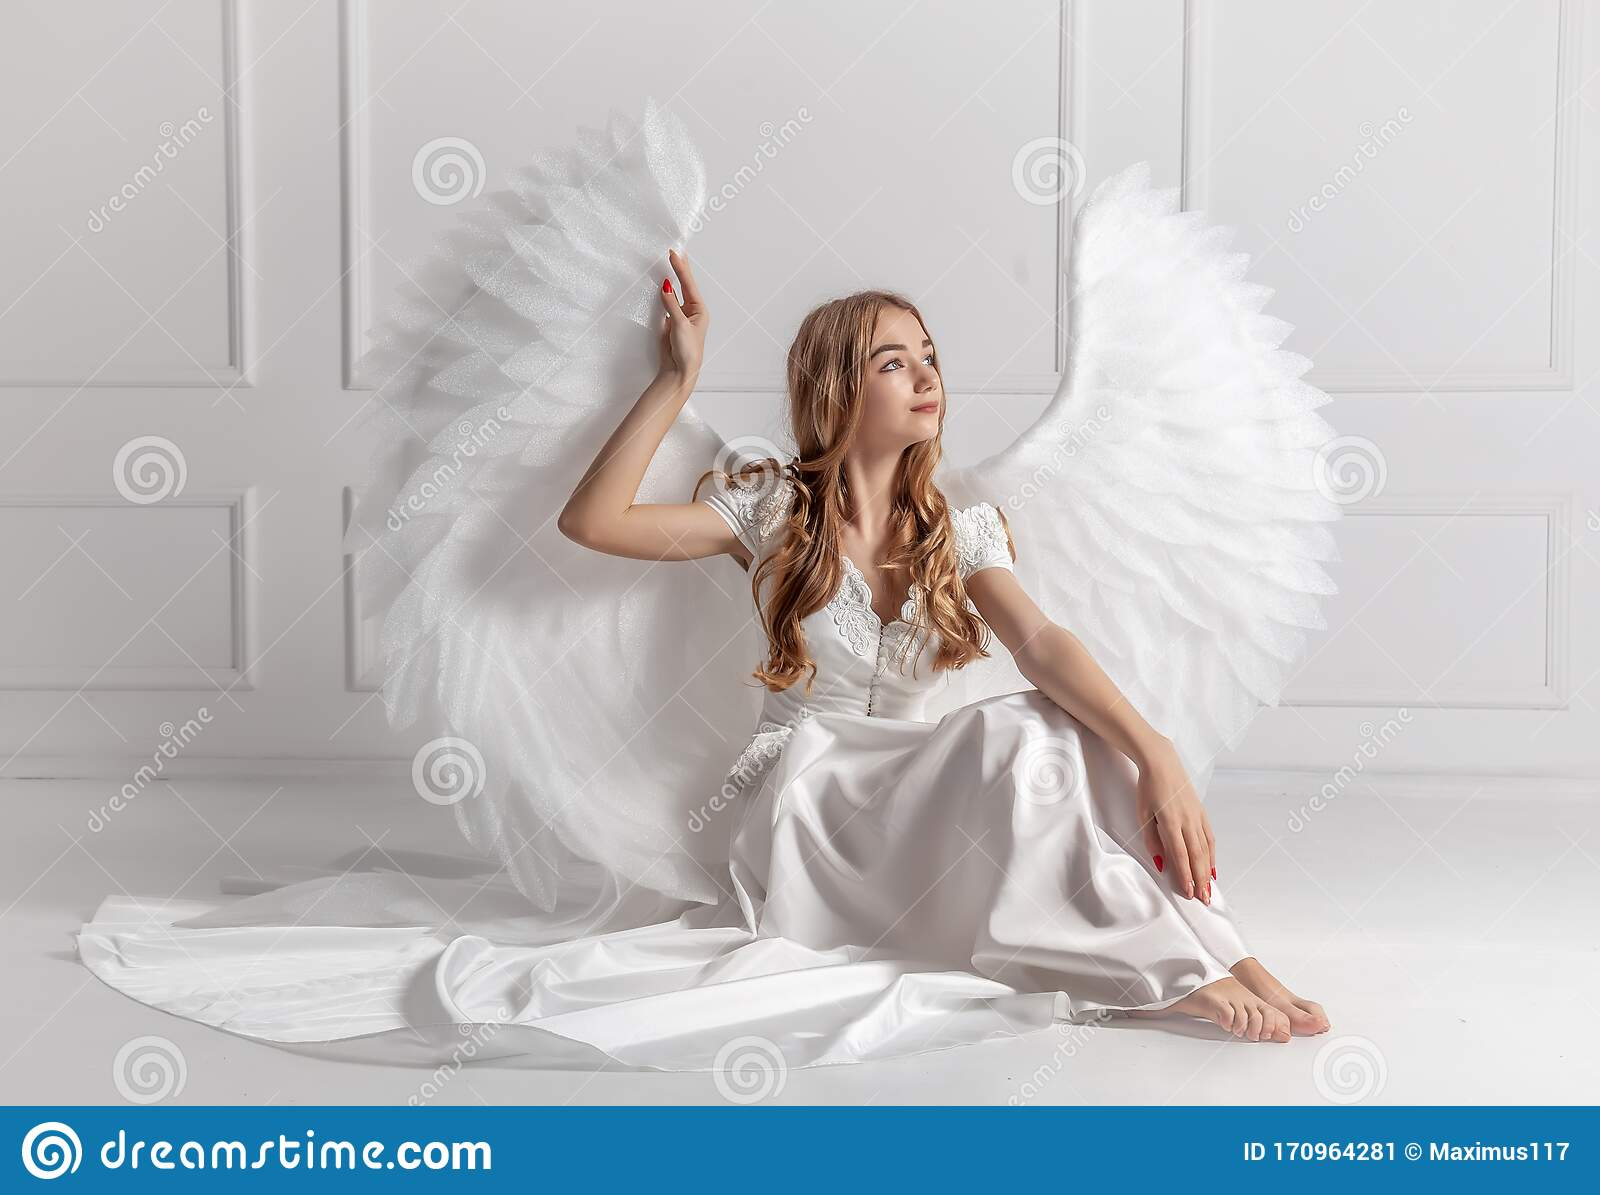 large white beautiful angel wings with attachments fancy dress girls//ladies